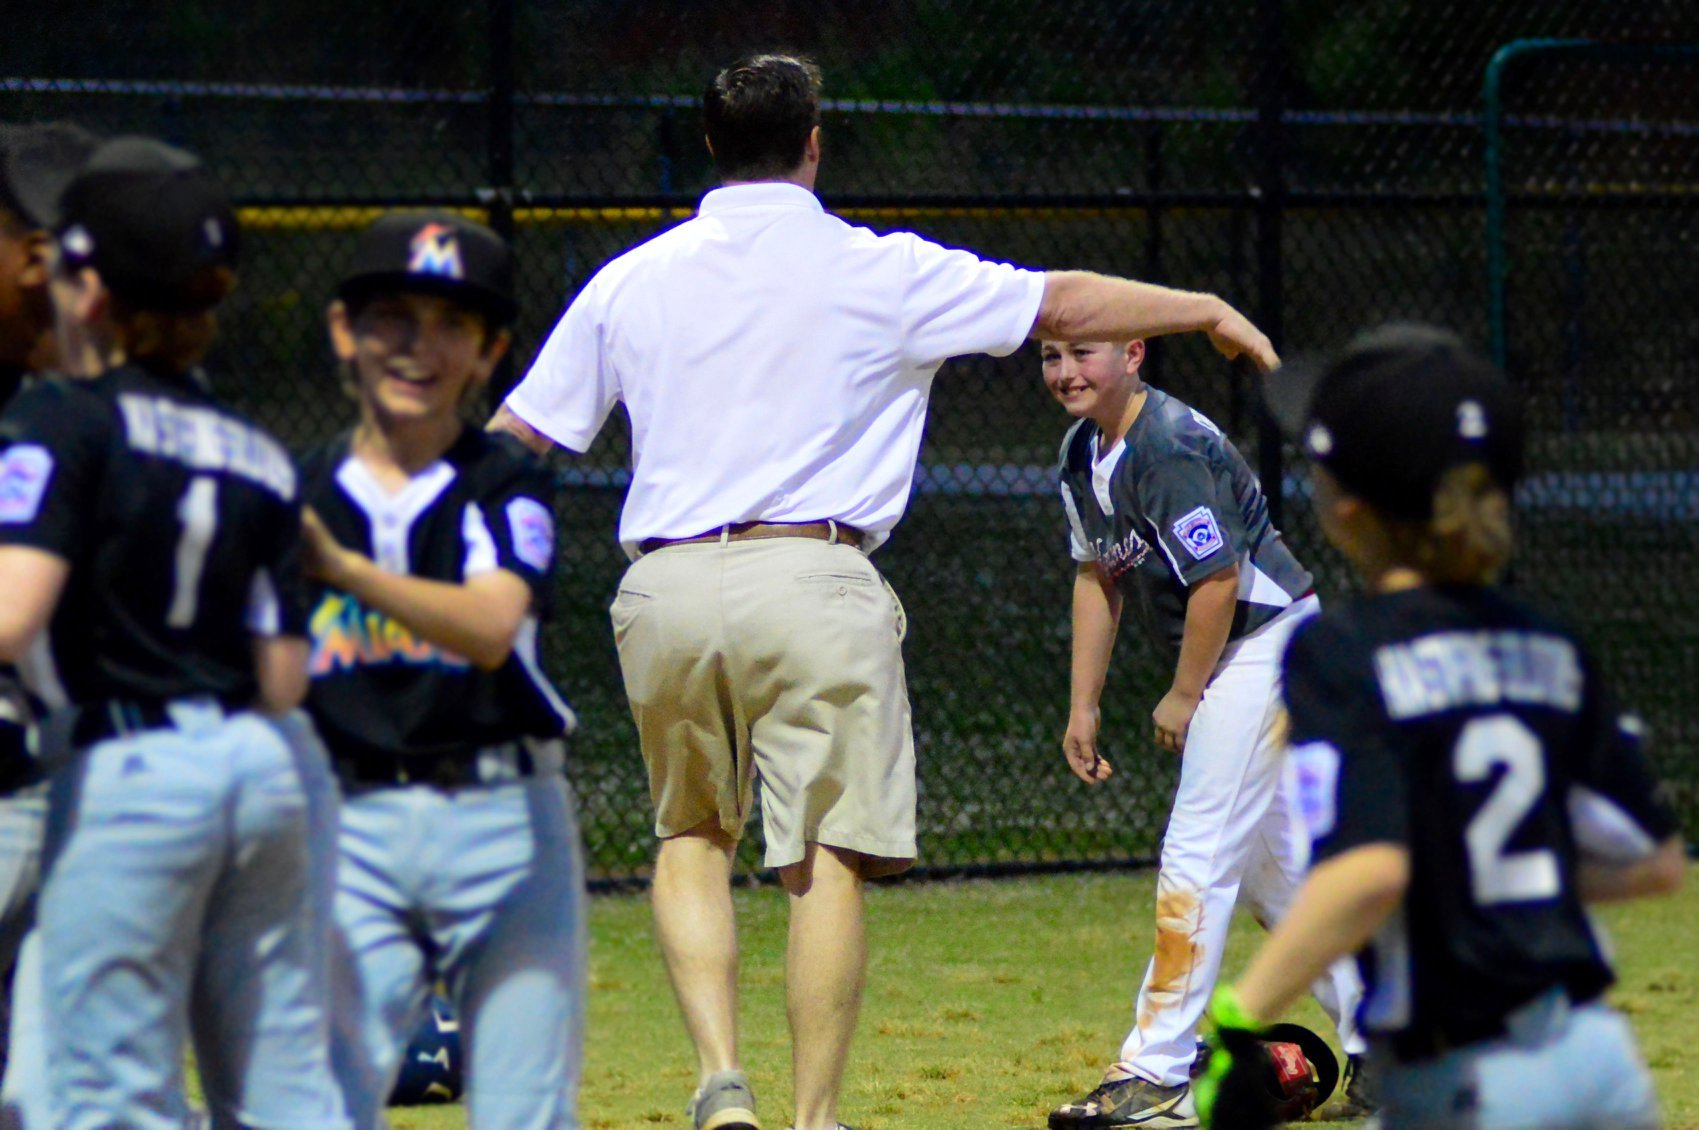 Ethan Hynicka hugs Coach Dawsey of the opposing team (Source: Northwood Little League)